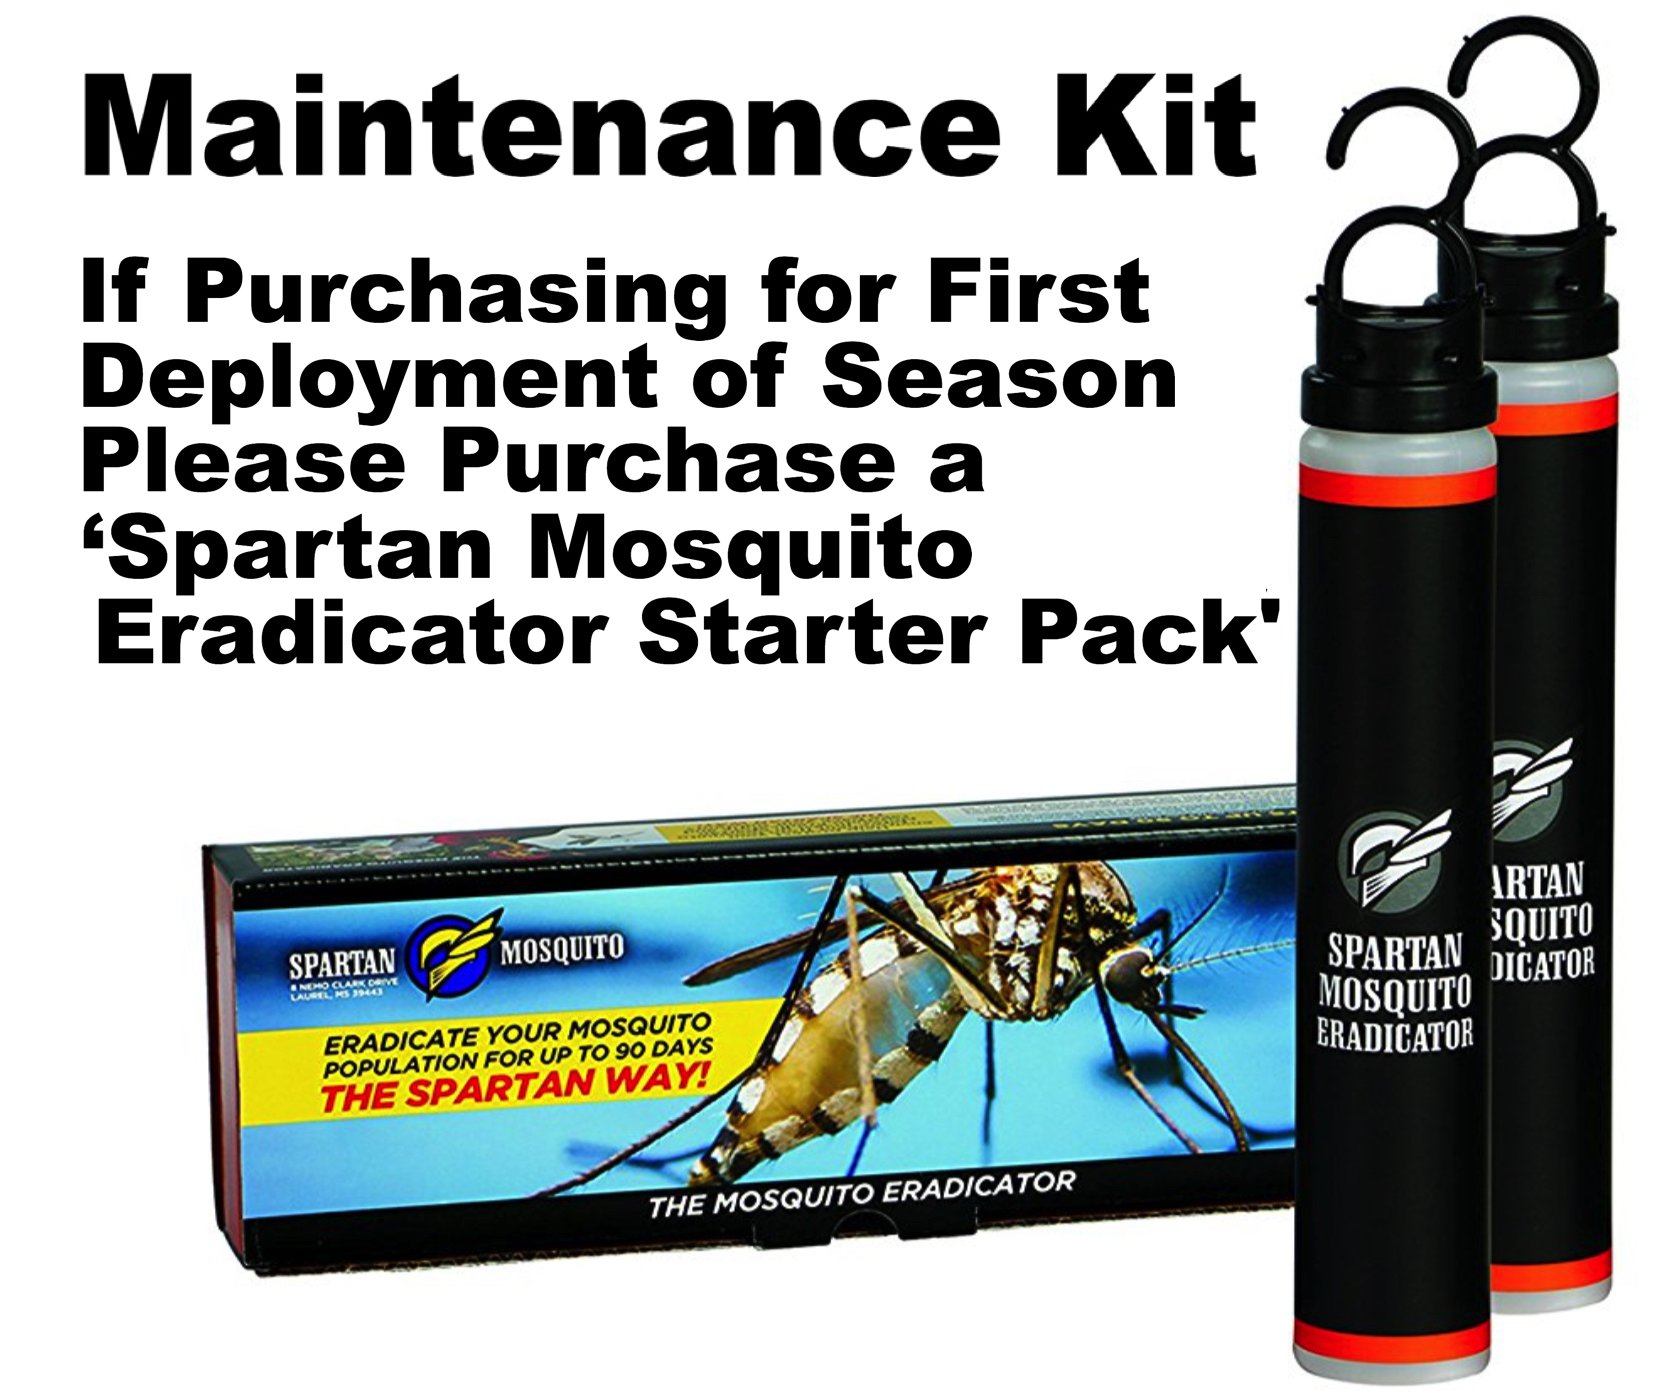 SPARTAN MOSQUITO ERADICATOR Control 1-ACRE MAINTENANCE; Best Whole Yard Outdoor Killer Barrier Solution; More Effective Than ShortTerm Insect Repellent Trap MosquitoFree Backyard Garden Patio